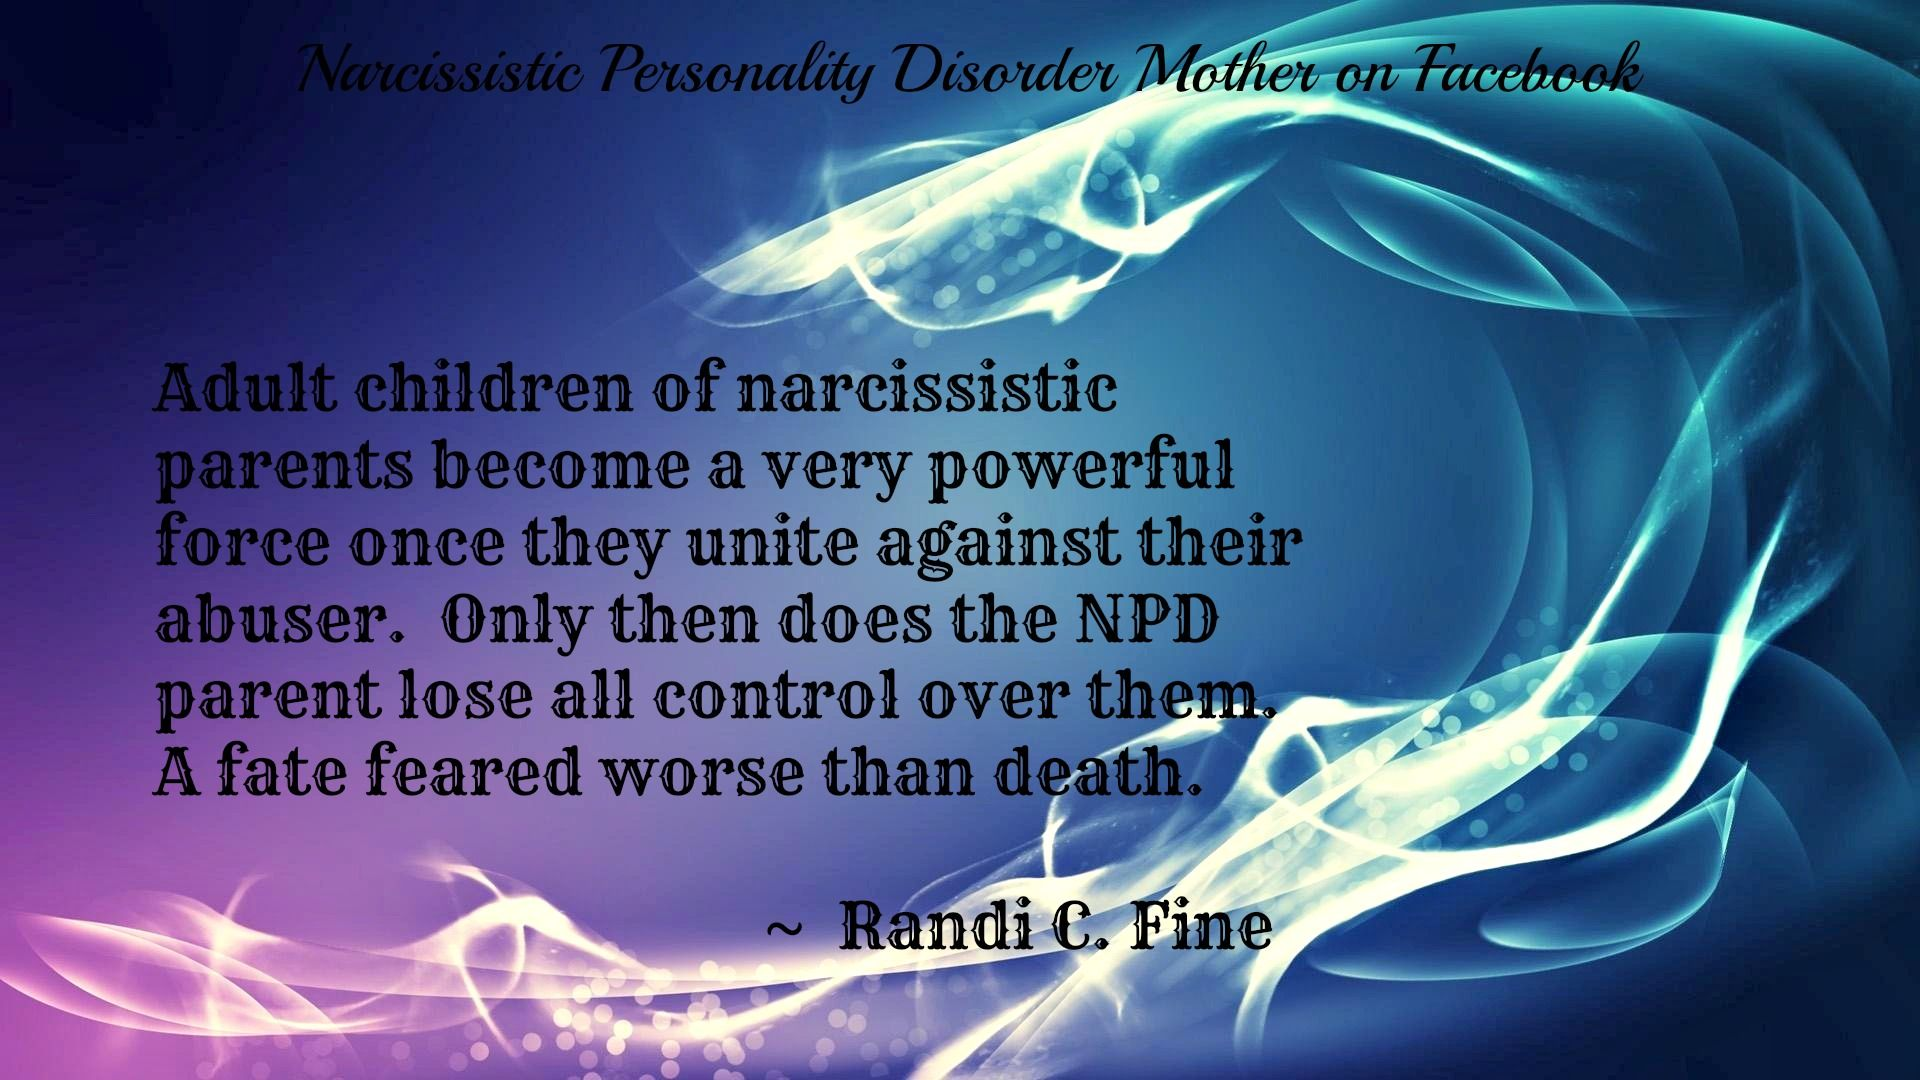 Daughters of mothers with narcissistic personality disorder